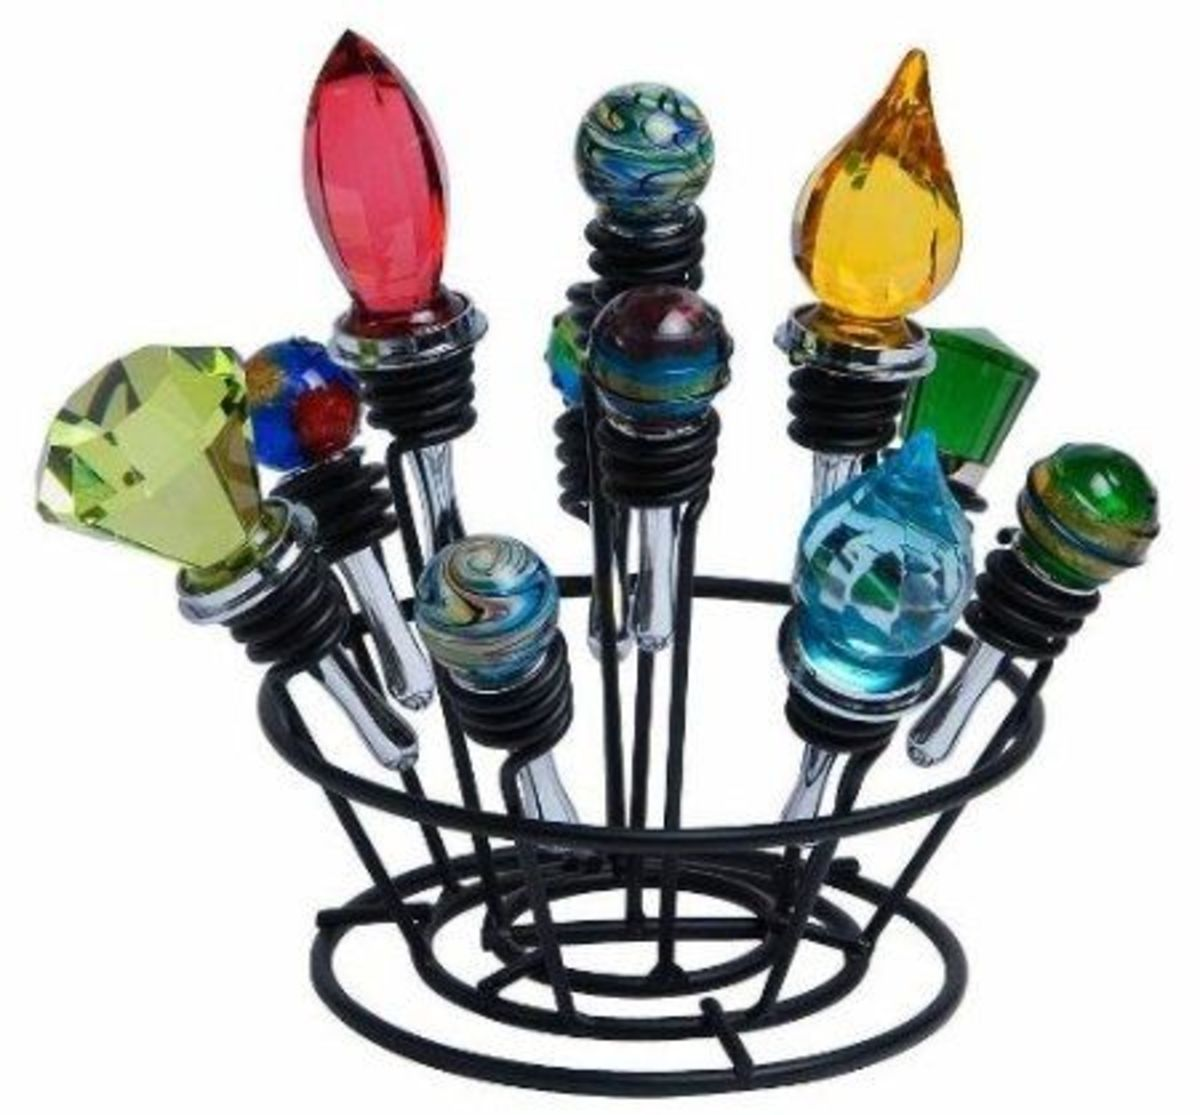 Wine Bottle Stopper Bouquet Display, Rack, or Stand - Storage Rack